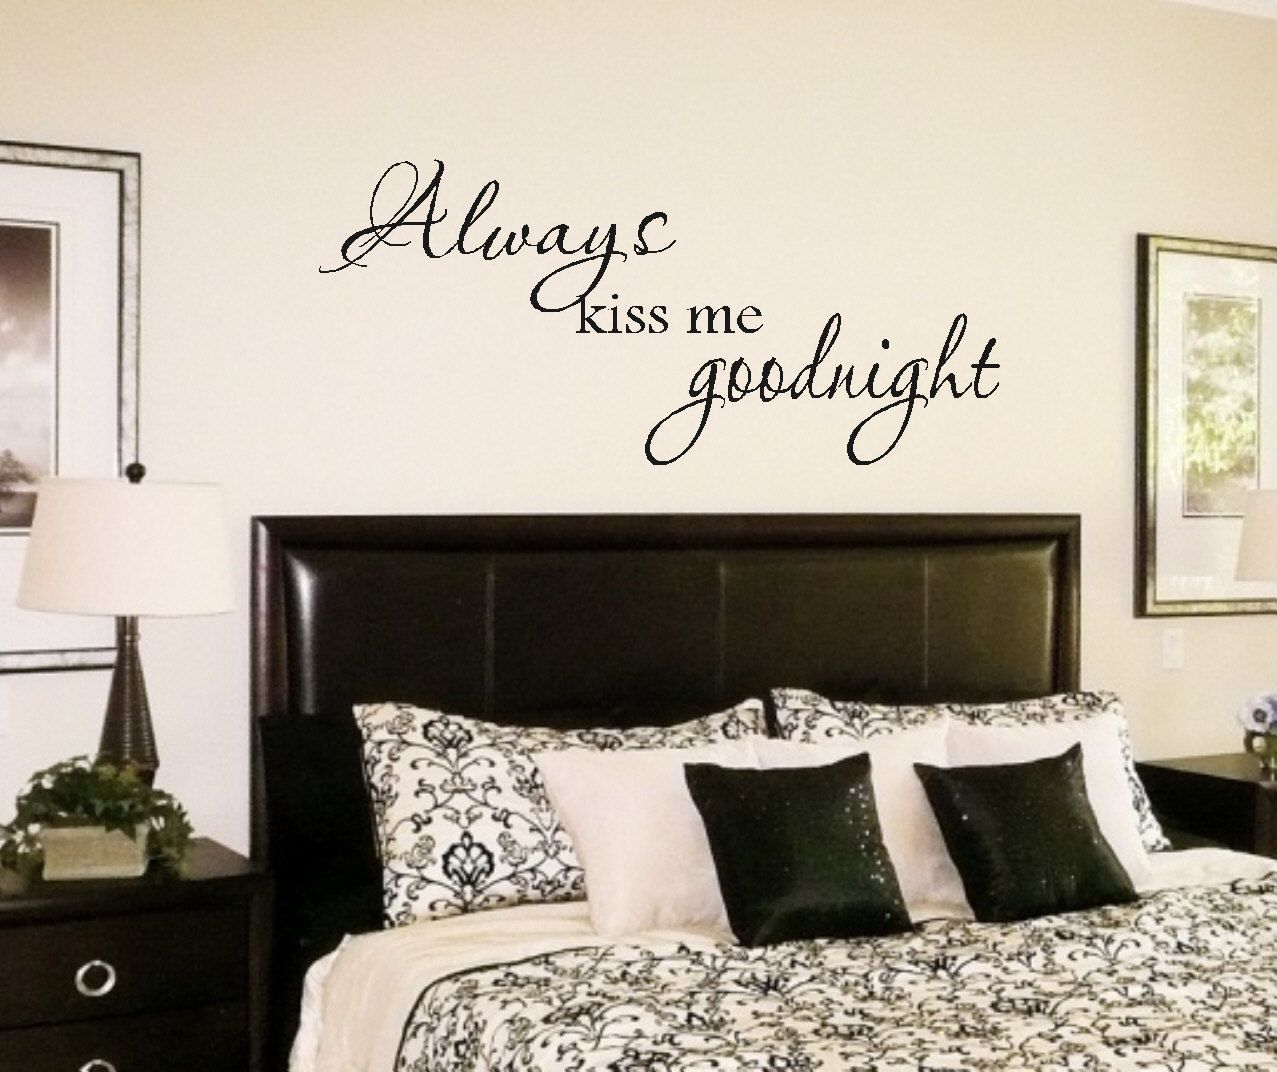 Now he canut forget home ideas pinterest vinyl wall quotes